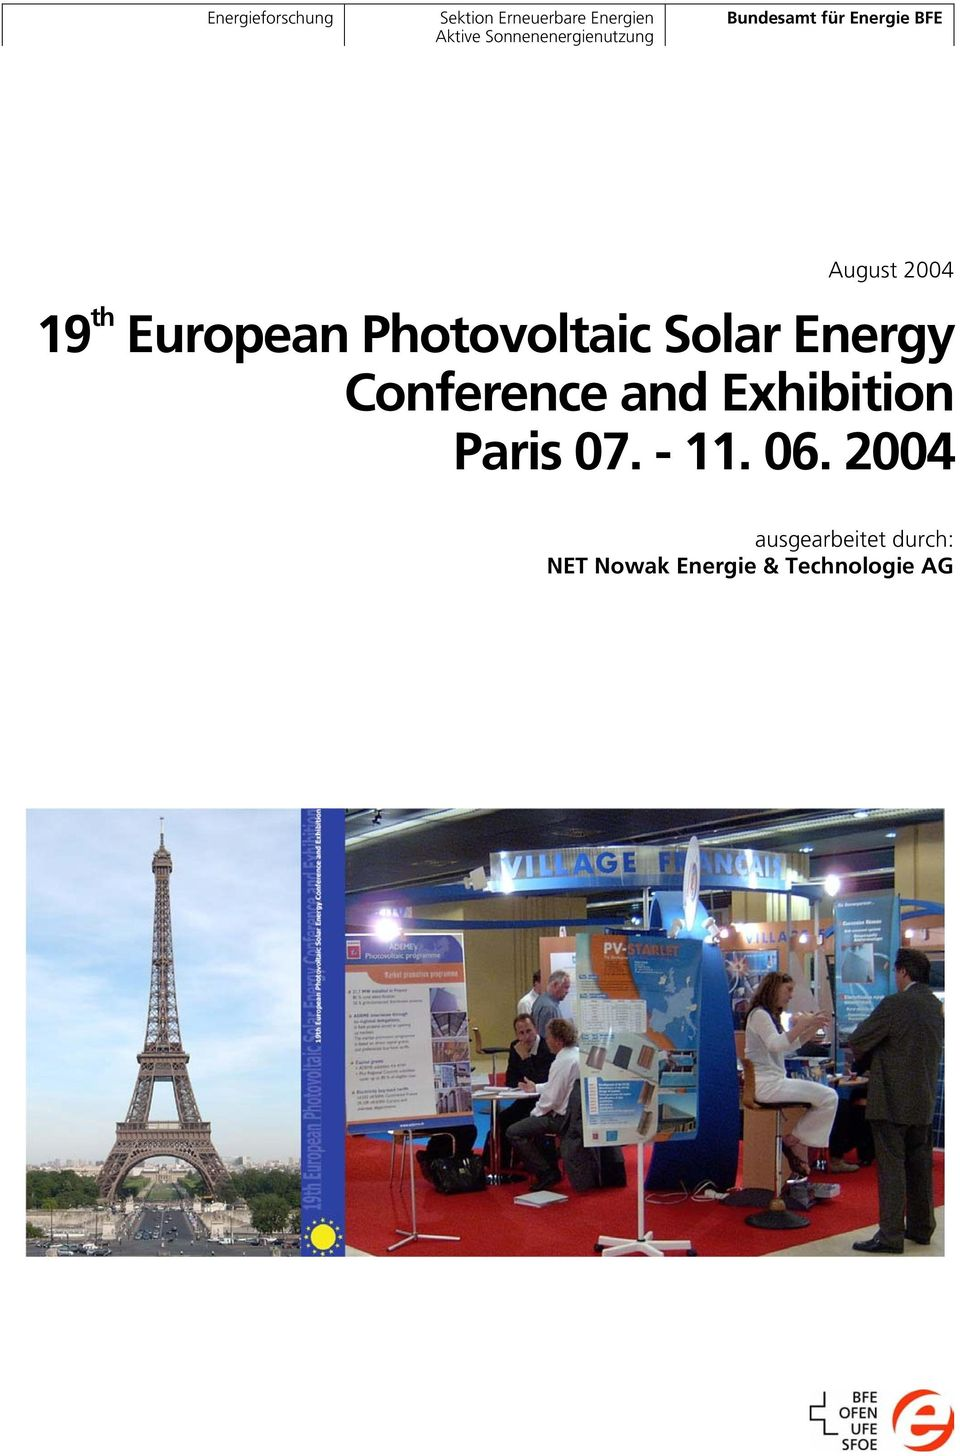 European Photovoltaic Solar Energy Conference and Exhibition